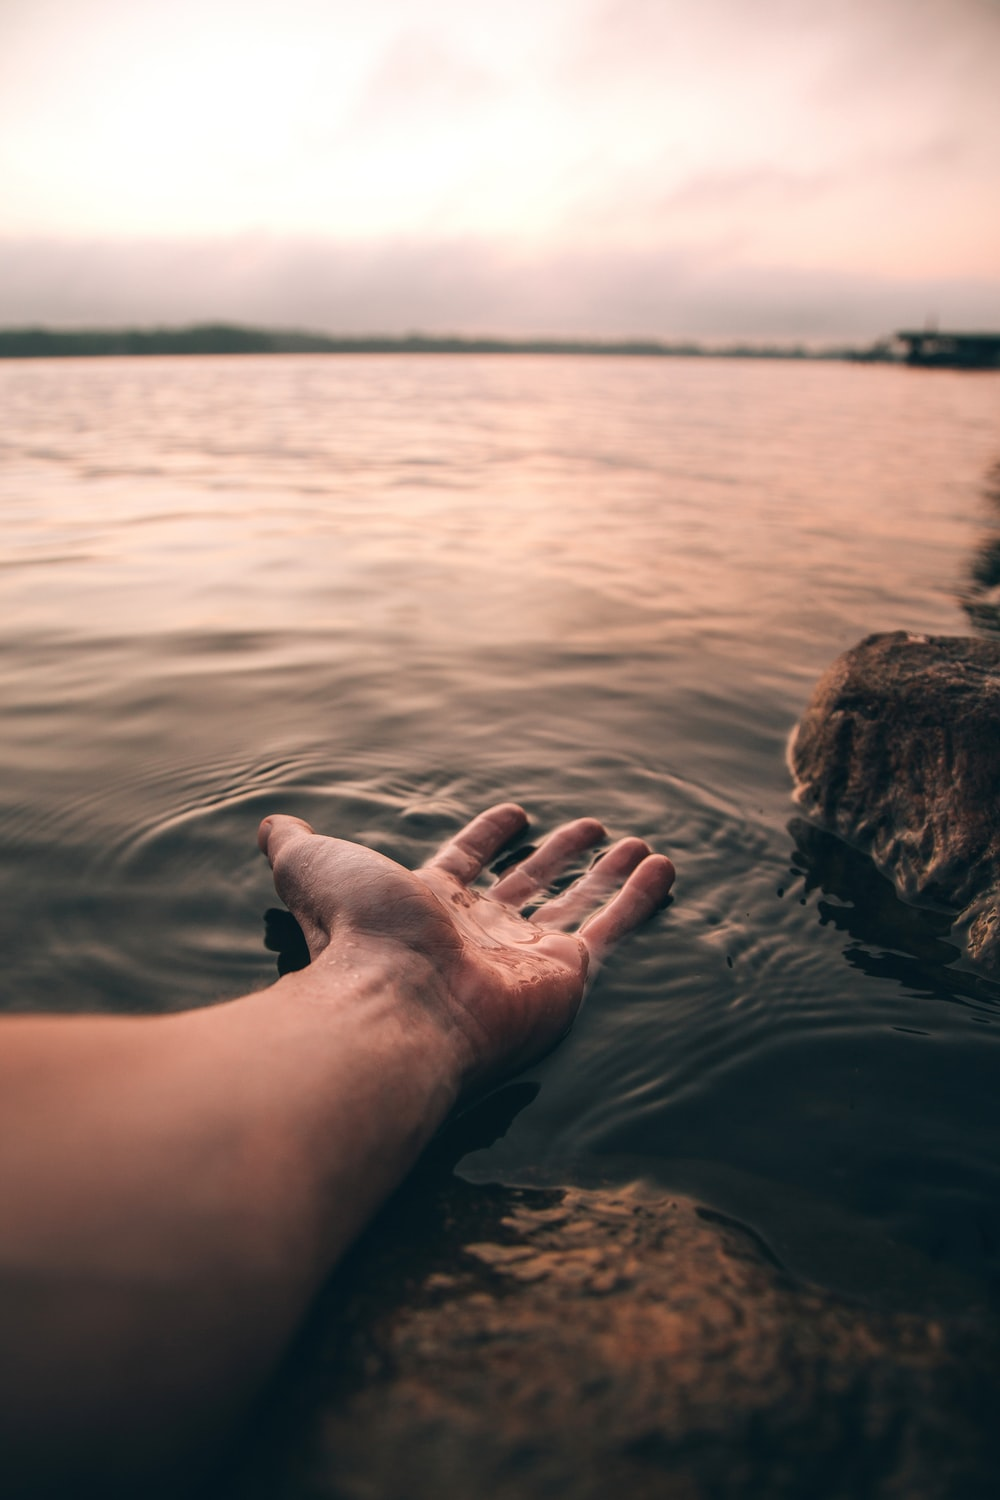 selective focus photography of person's hand on body of water